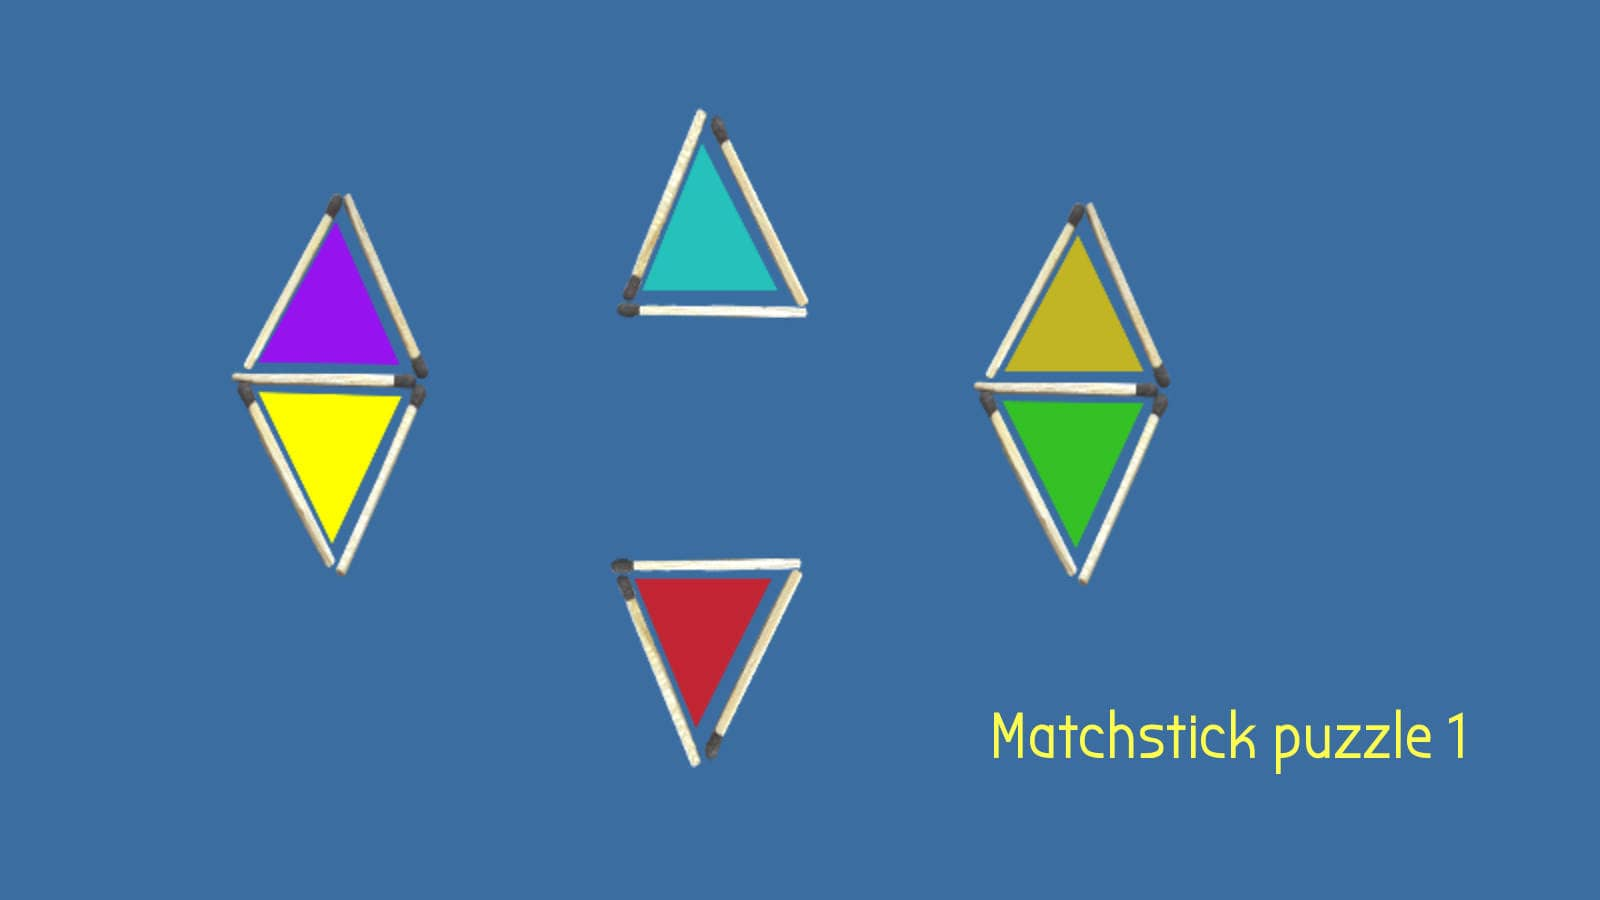 Matchstick puzzle 1